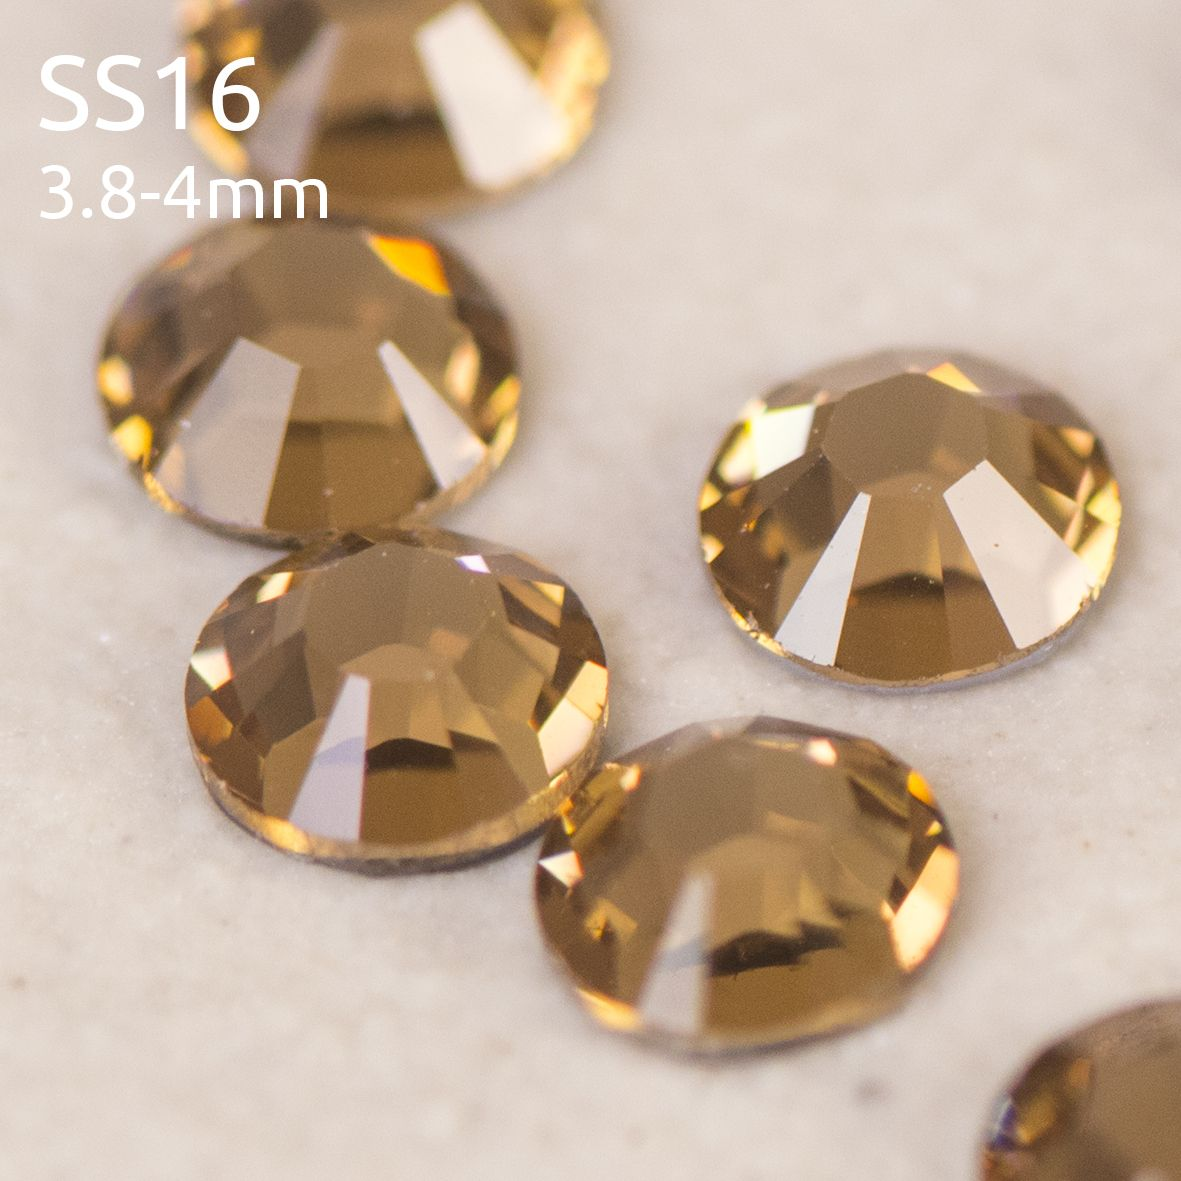 Swarovski ® Flatback Hot Fix SS16 (4mm) Crystals, Style 2028/2038 Xilion Rose Cut category image